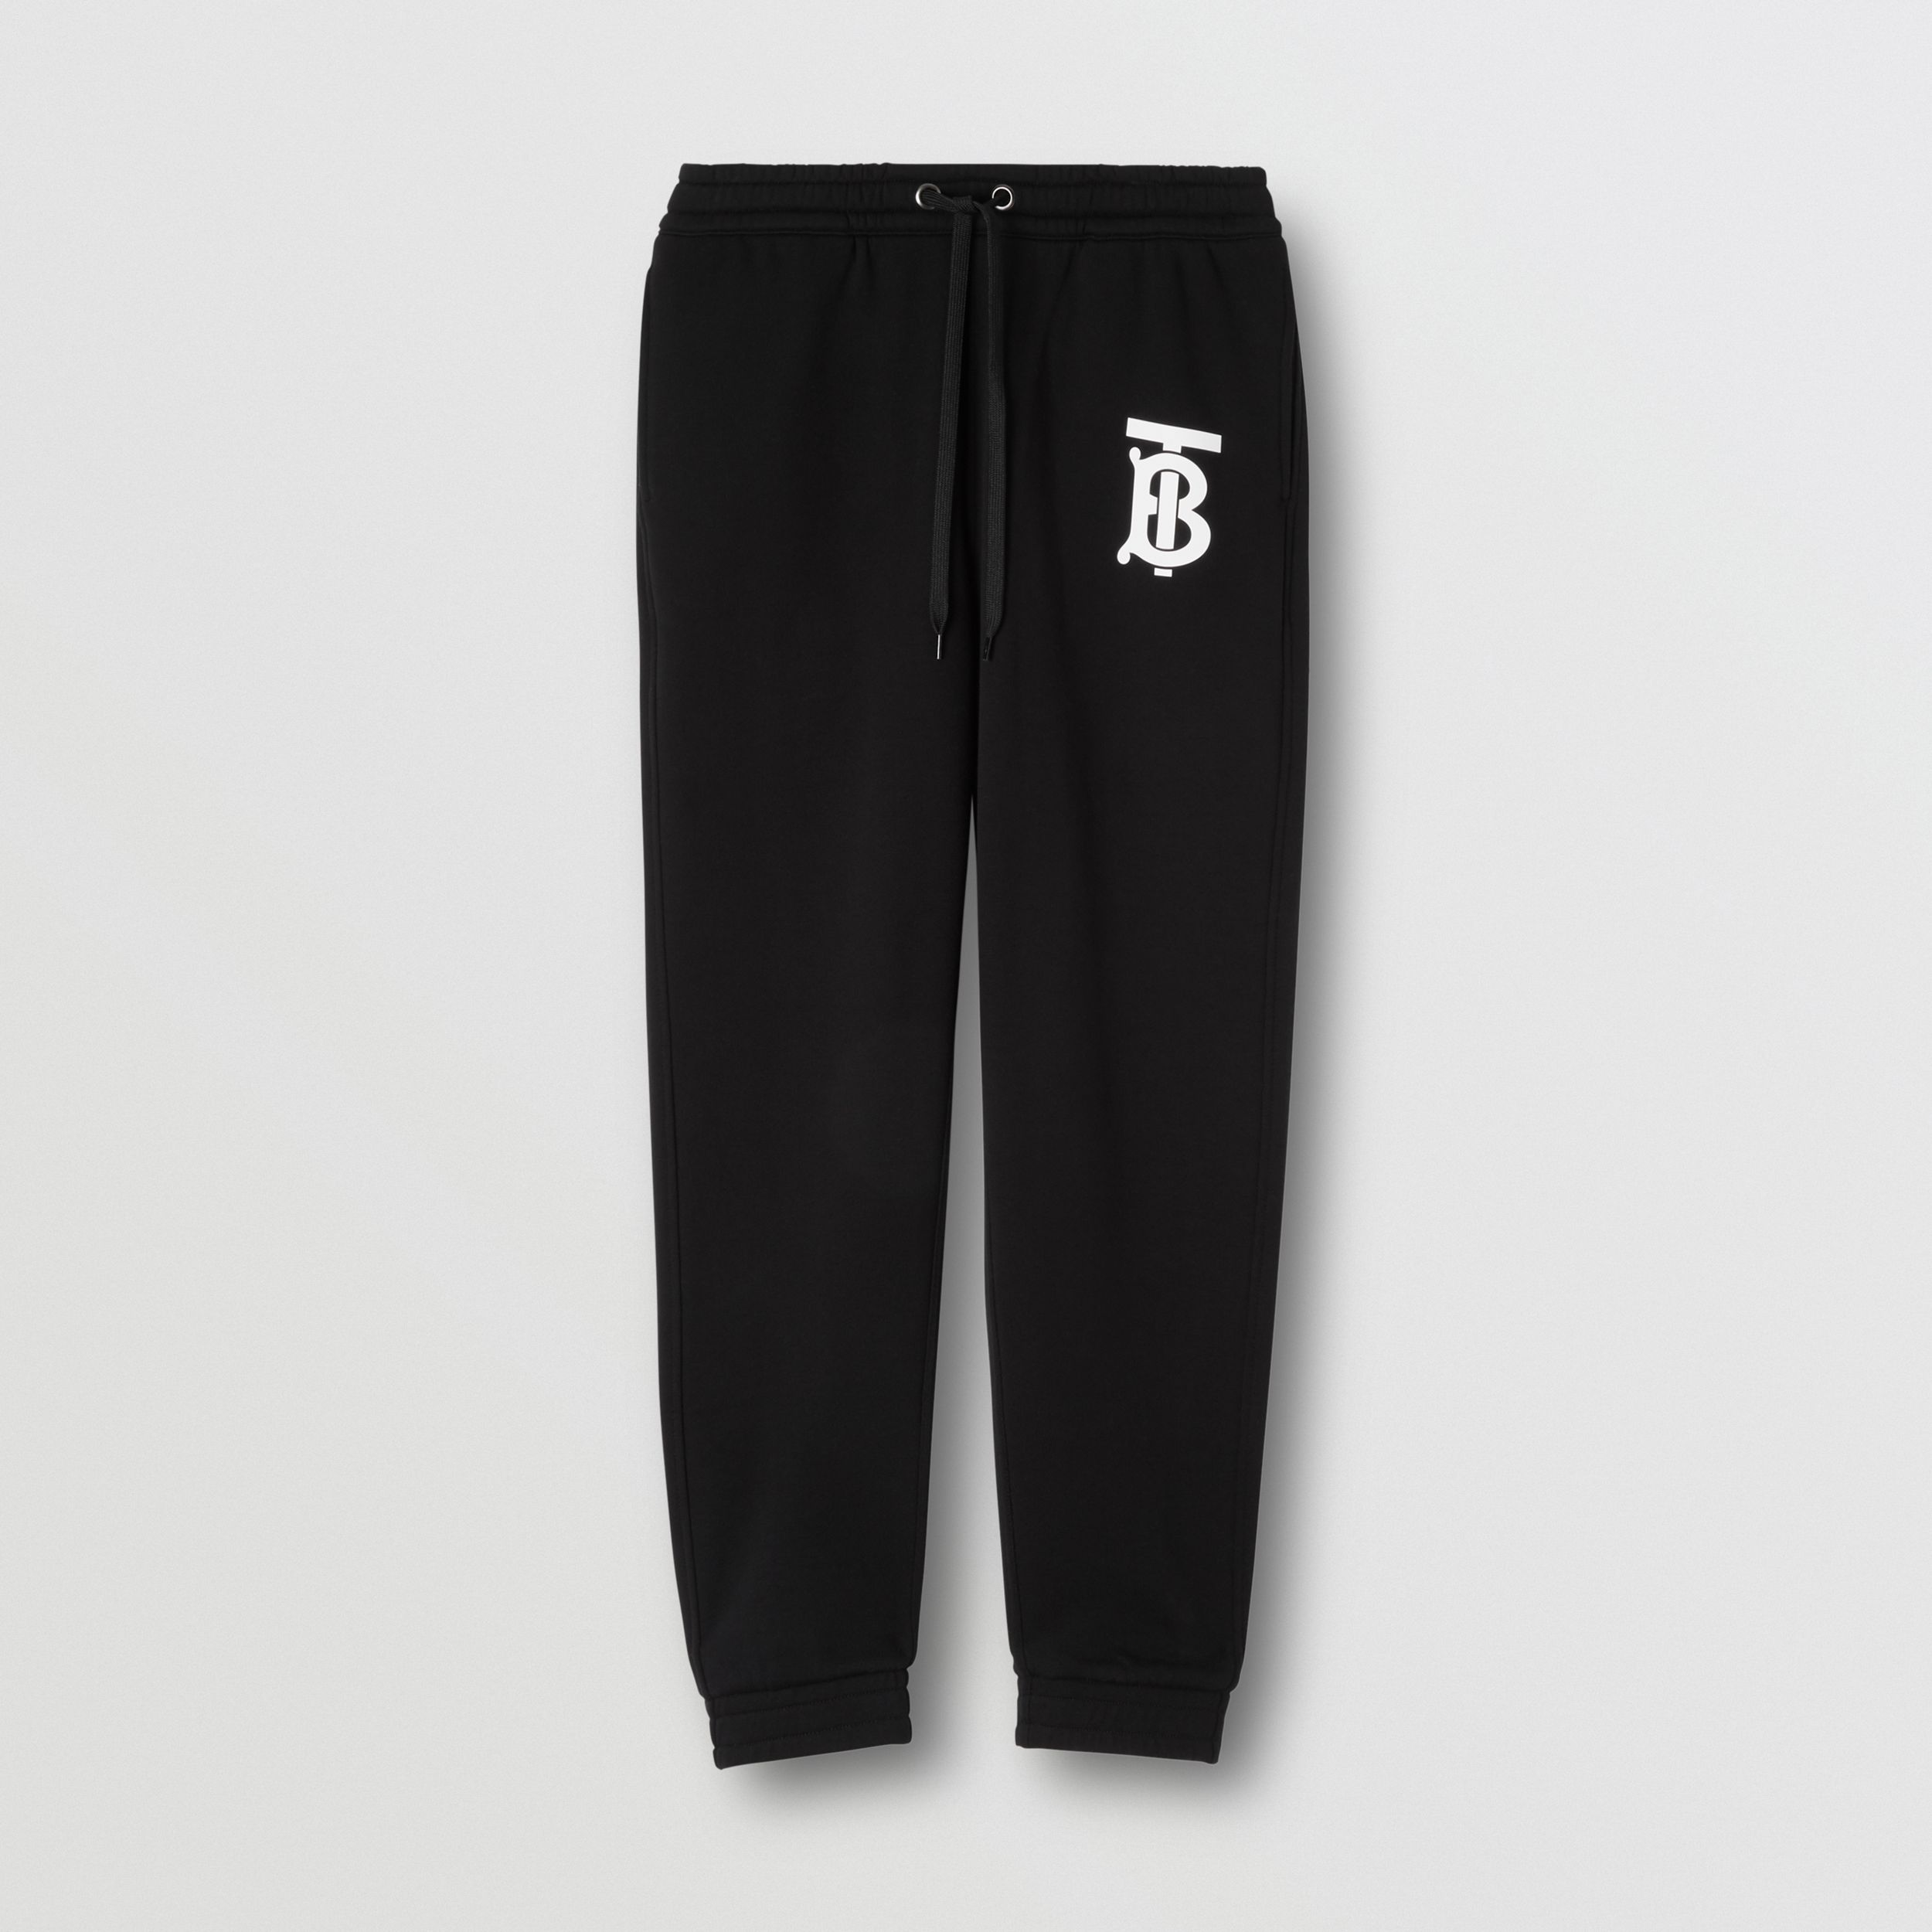 Monogram Motif Cotton Jogging Pants in Black - Women | Burberry - 4